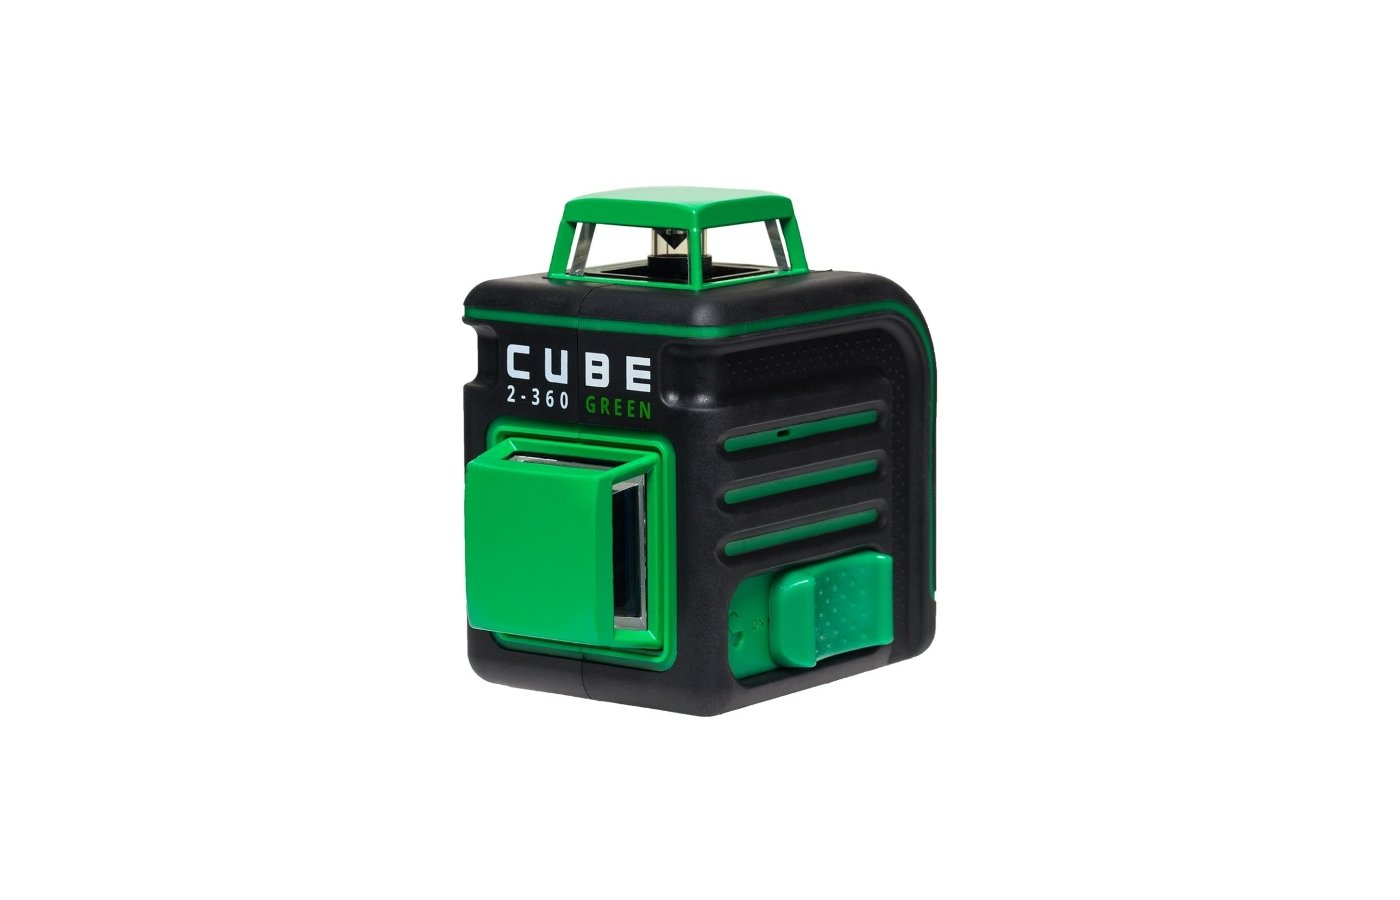 ADA Cube 2-360 Home Green Ultimate Edition